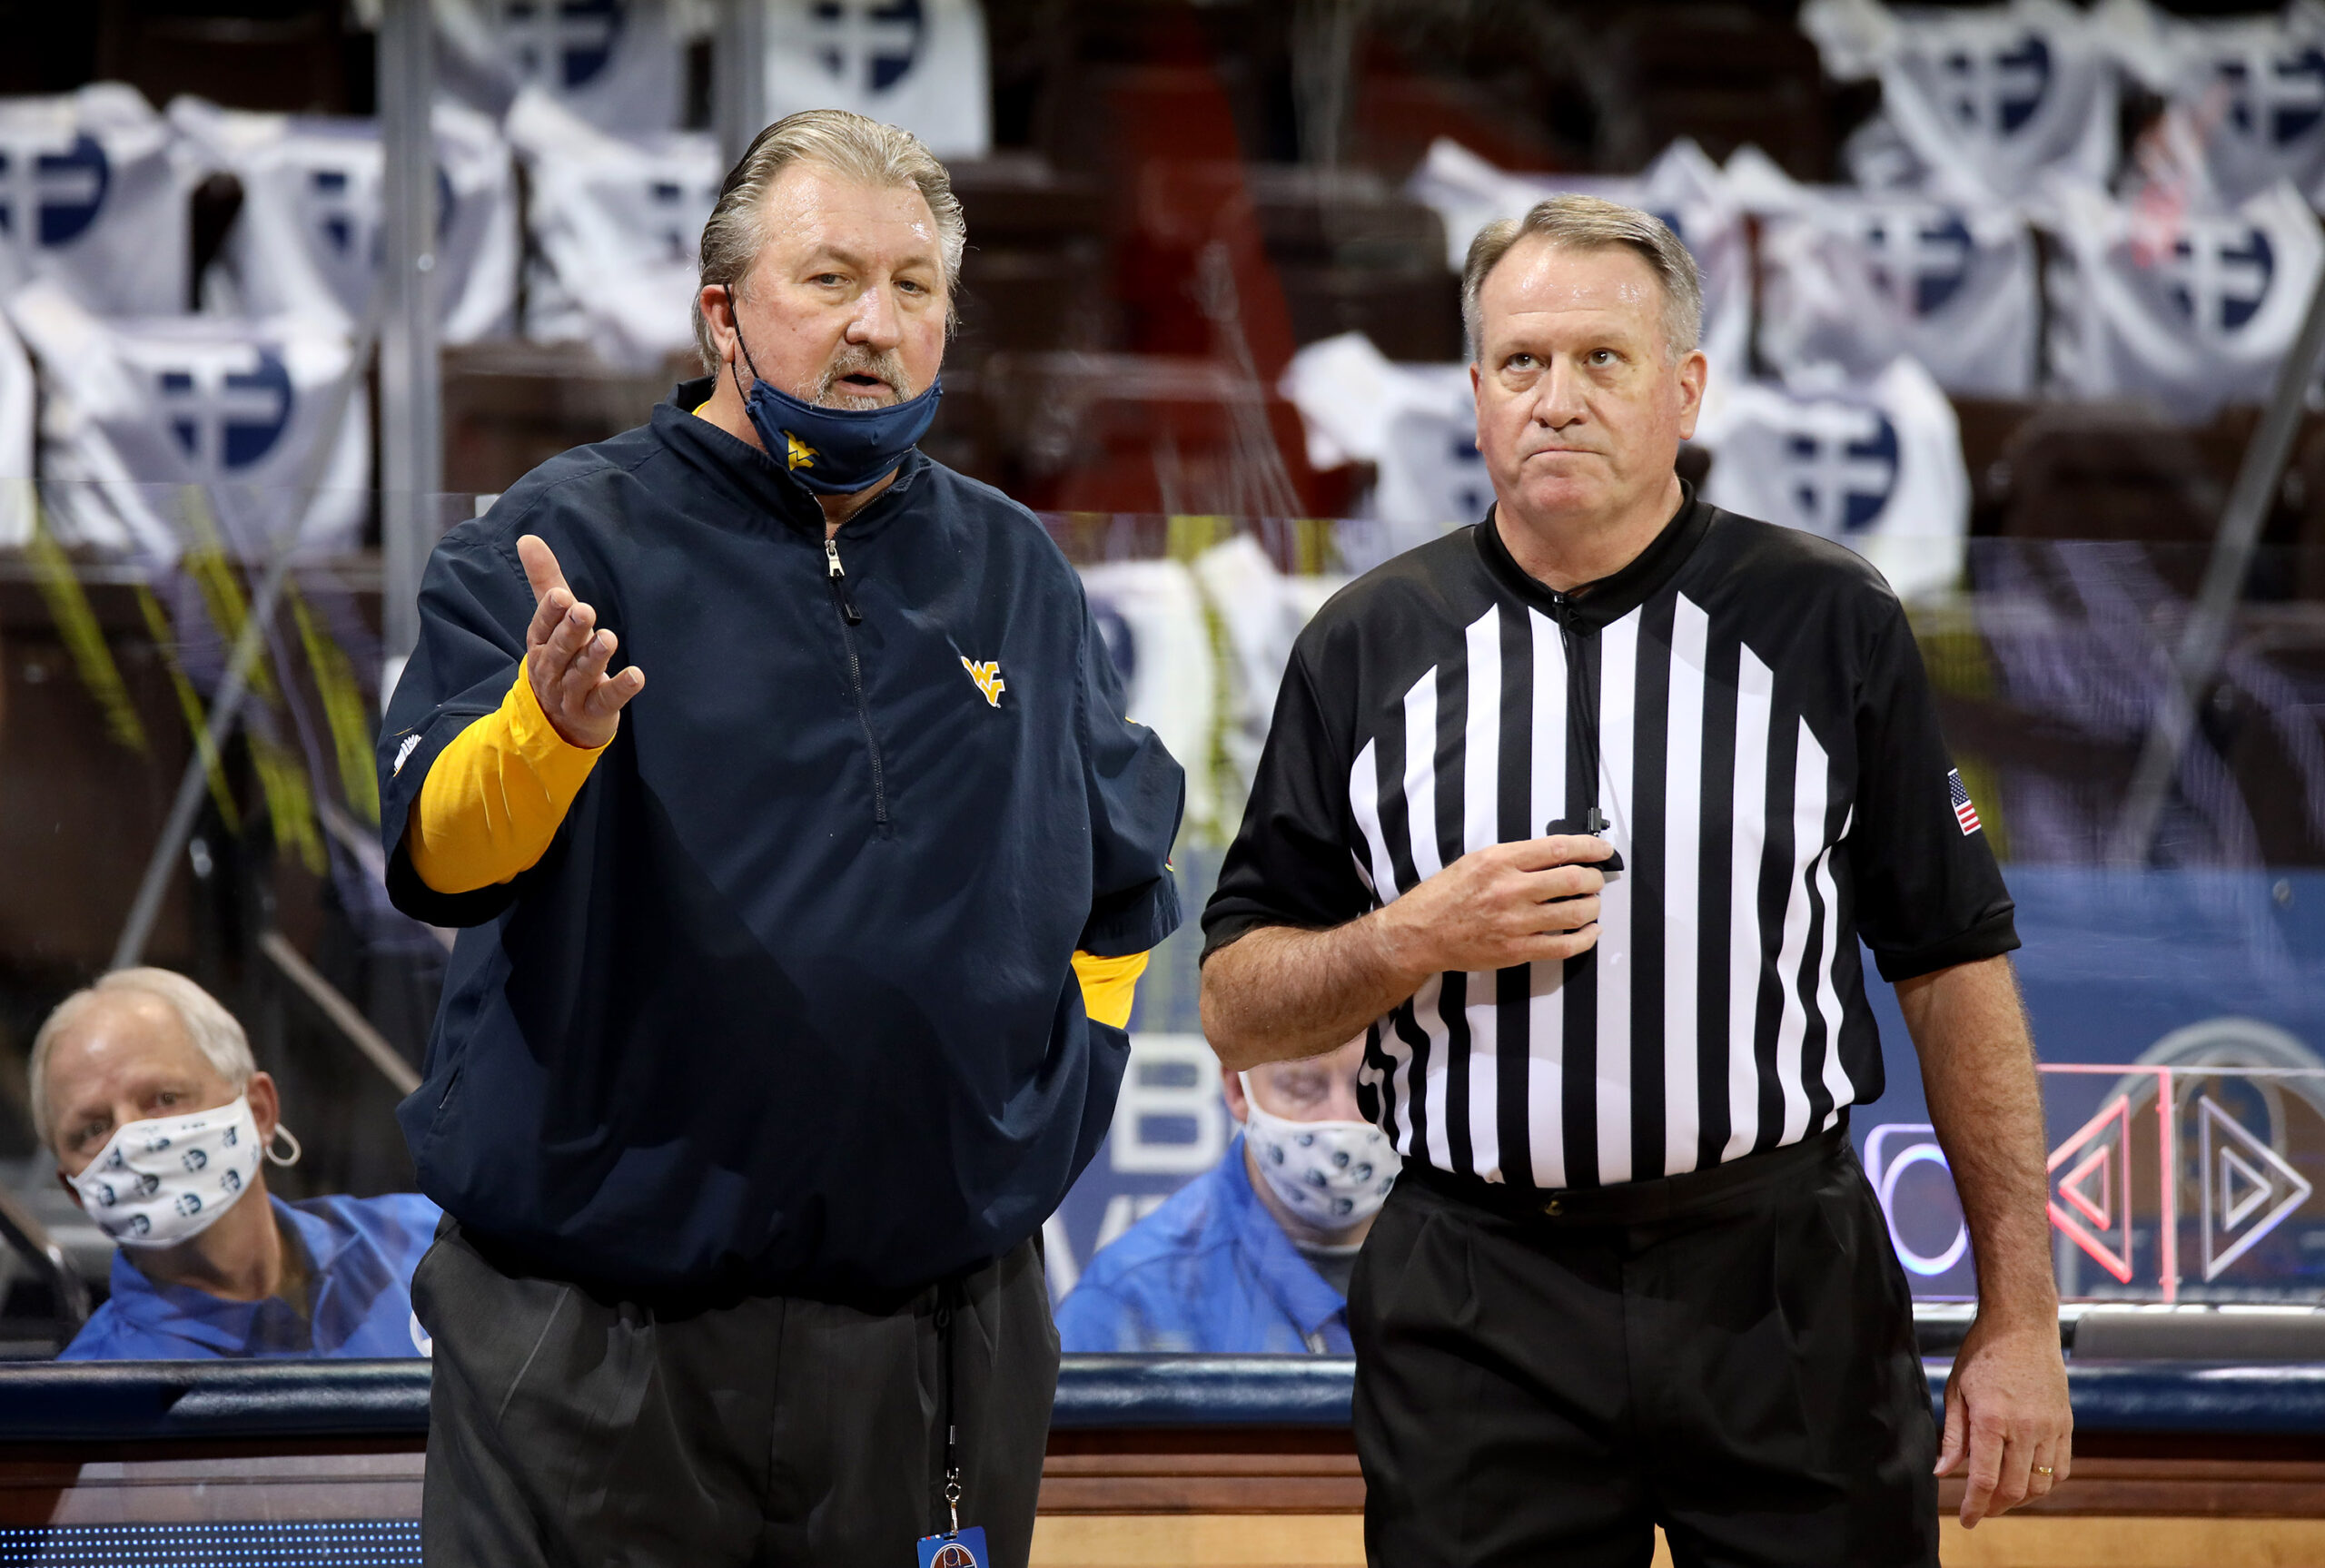 WVU faces Western Kentucky in the Crossover Classic final - WV MetroNews